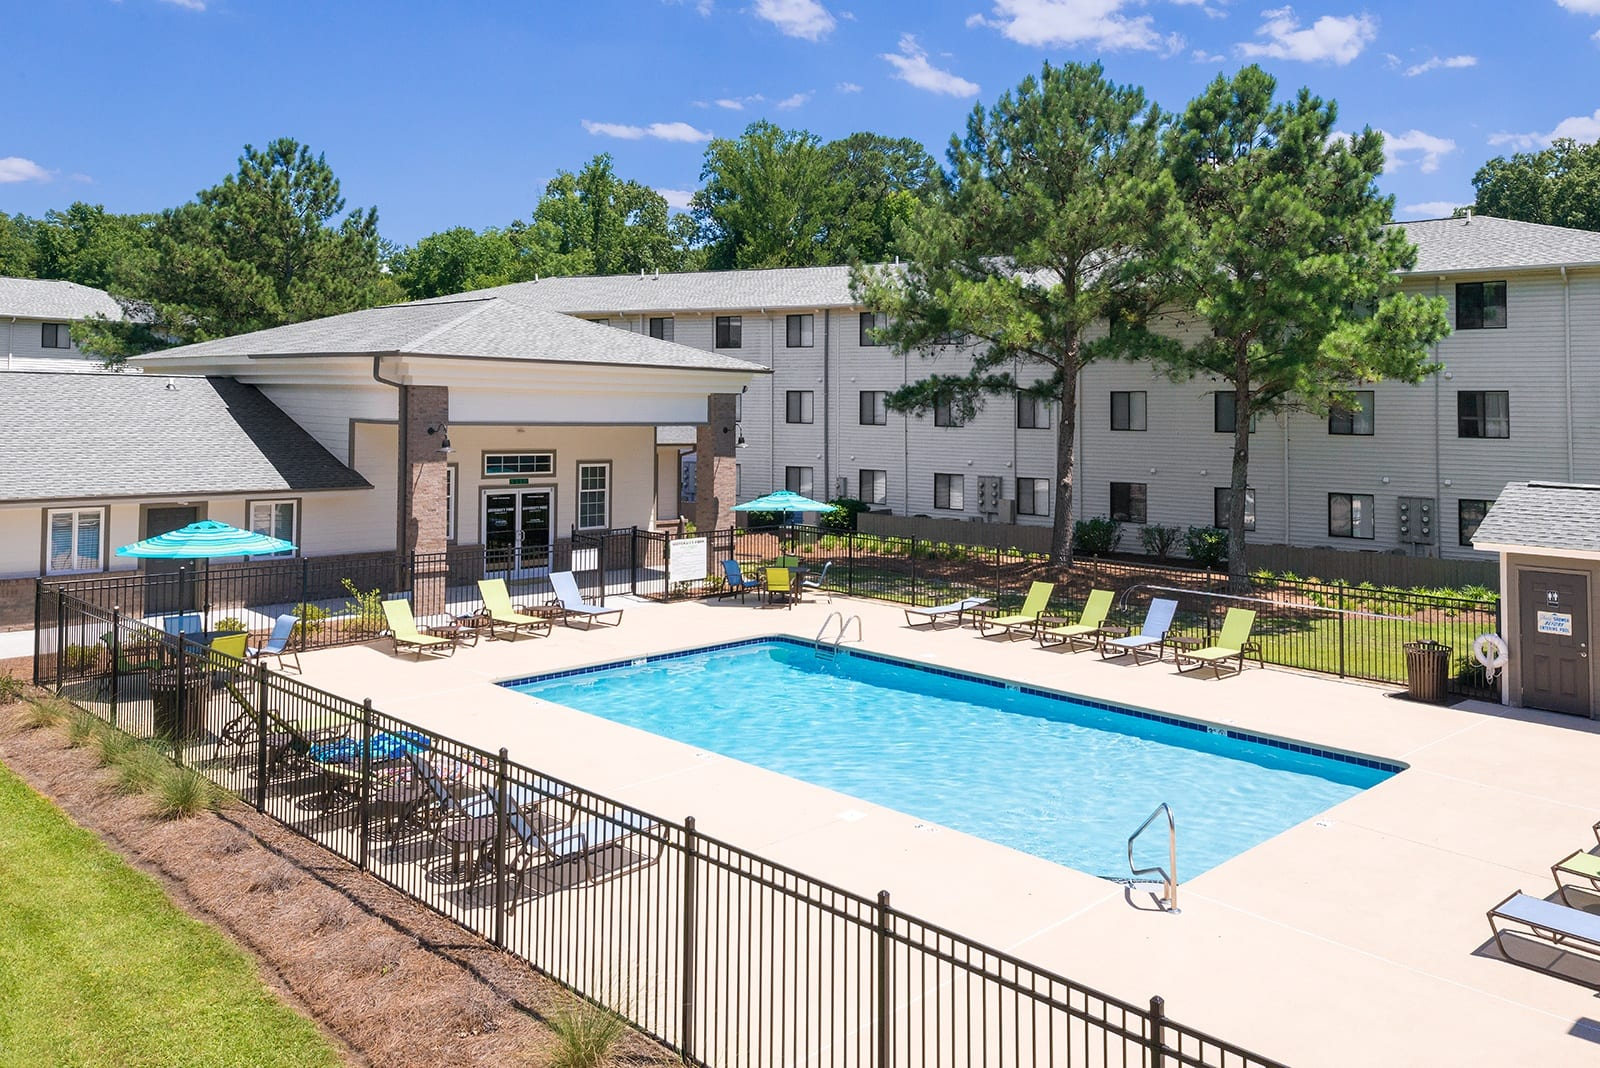 Outdoor pool at Apartments in Greenville